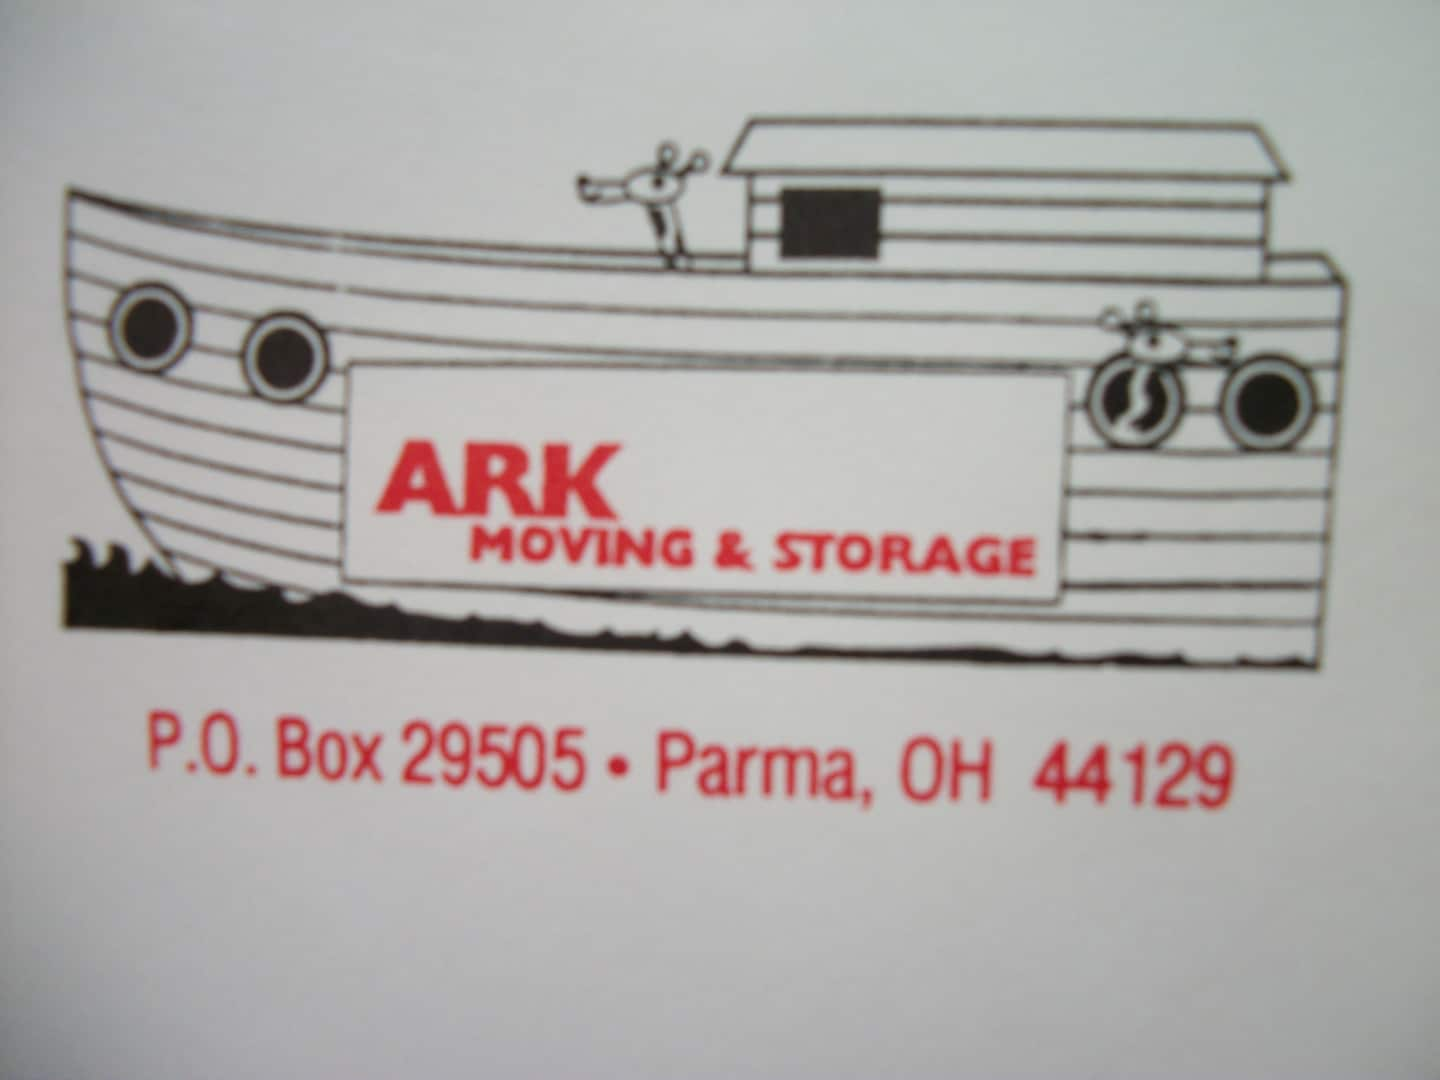 Ark Moving & Storage